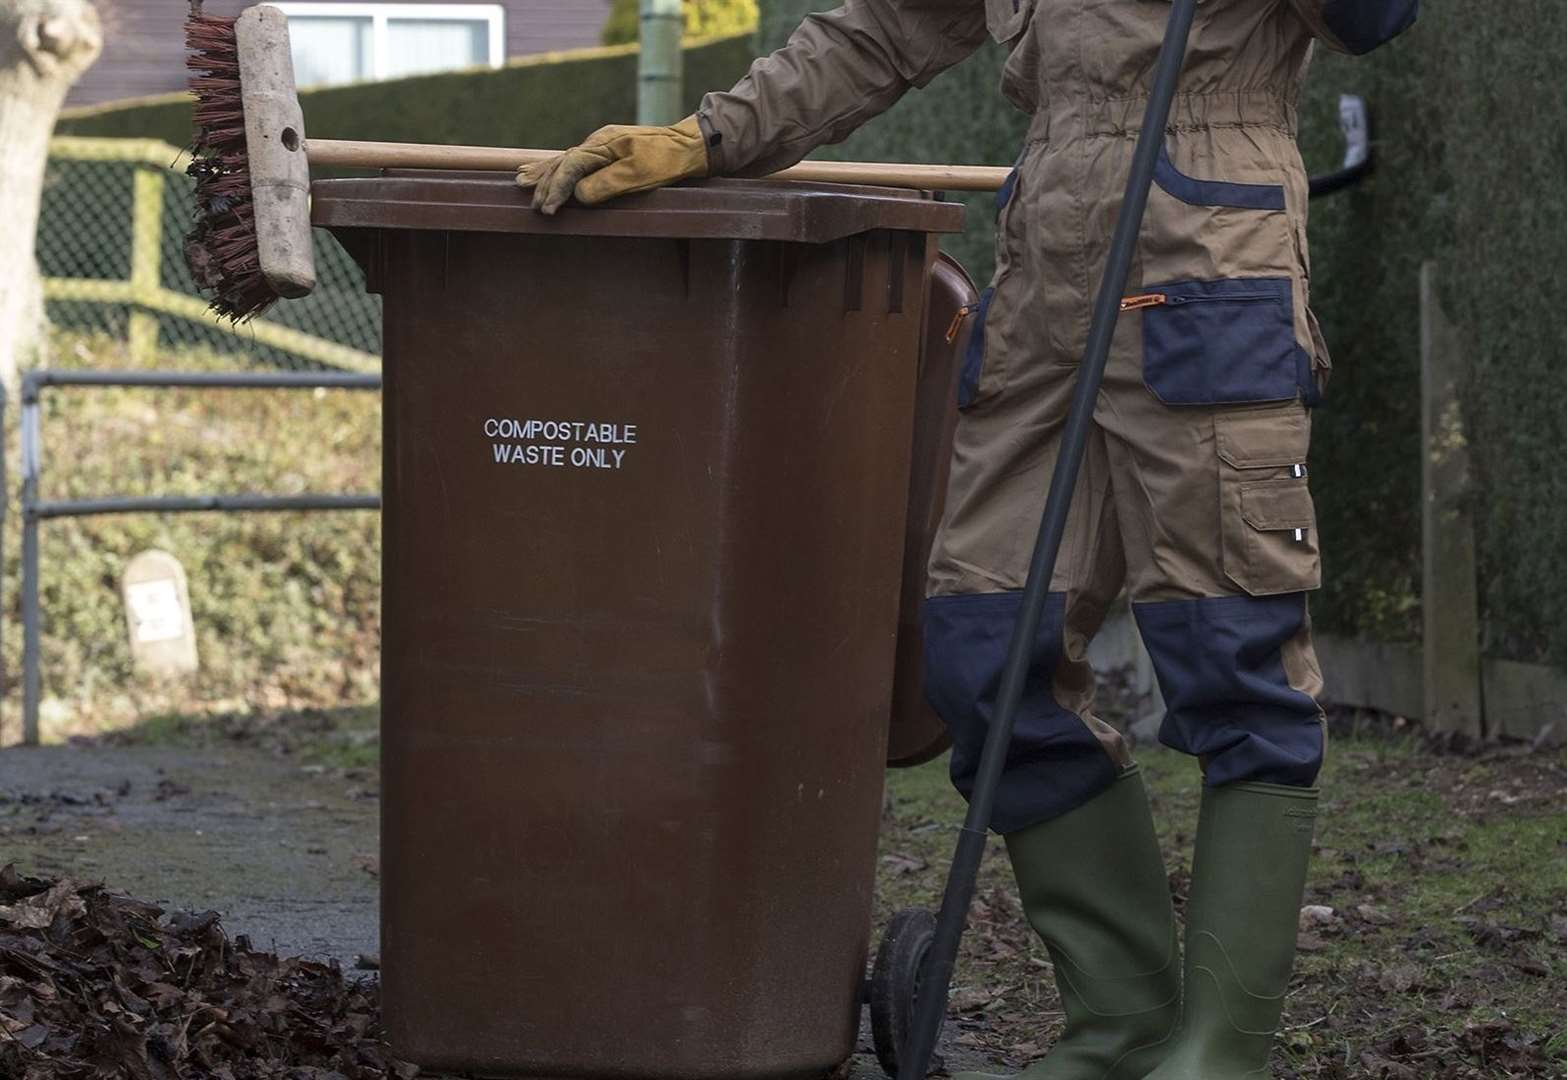 Babergh charging above national average fee for brown bin collections, data reveals